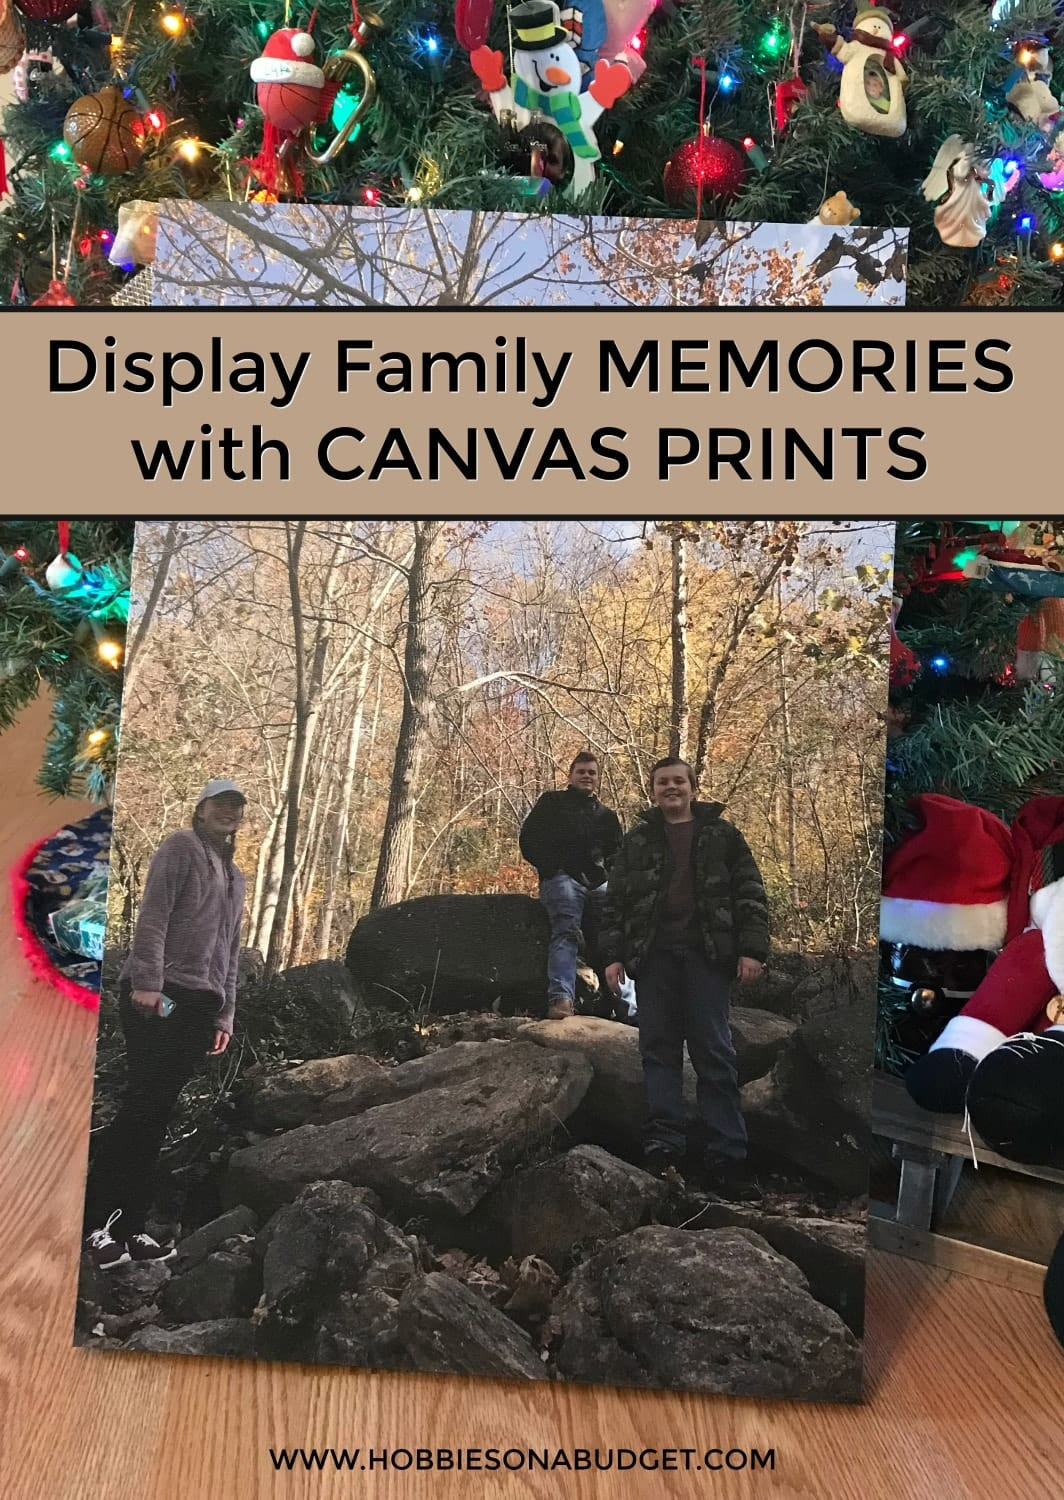 Display Family Memories with CANVAS PRINTS